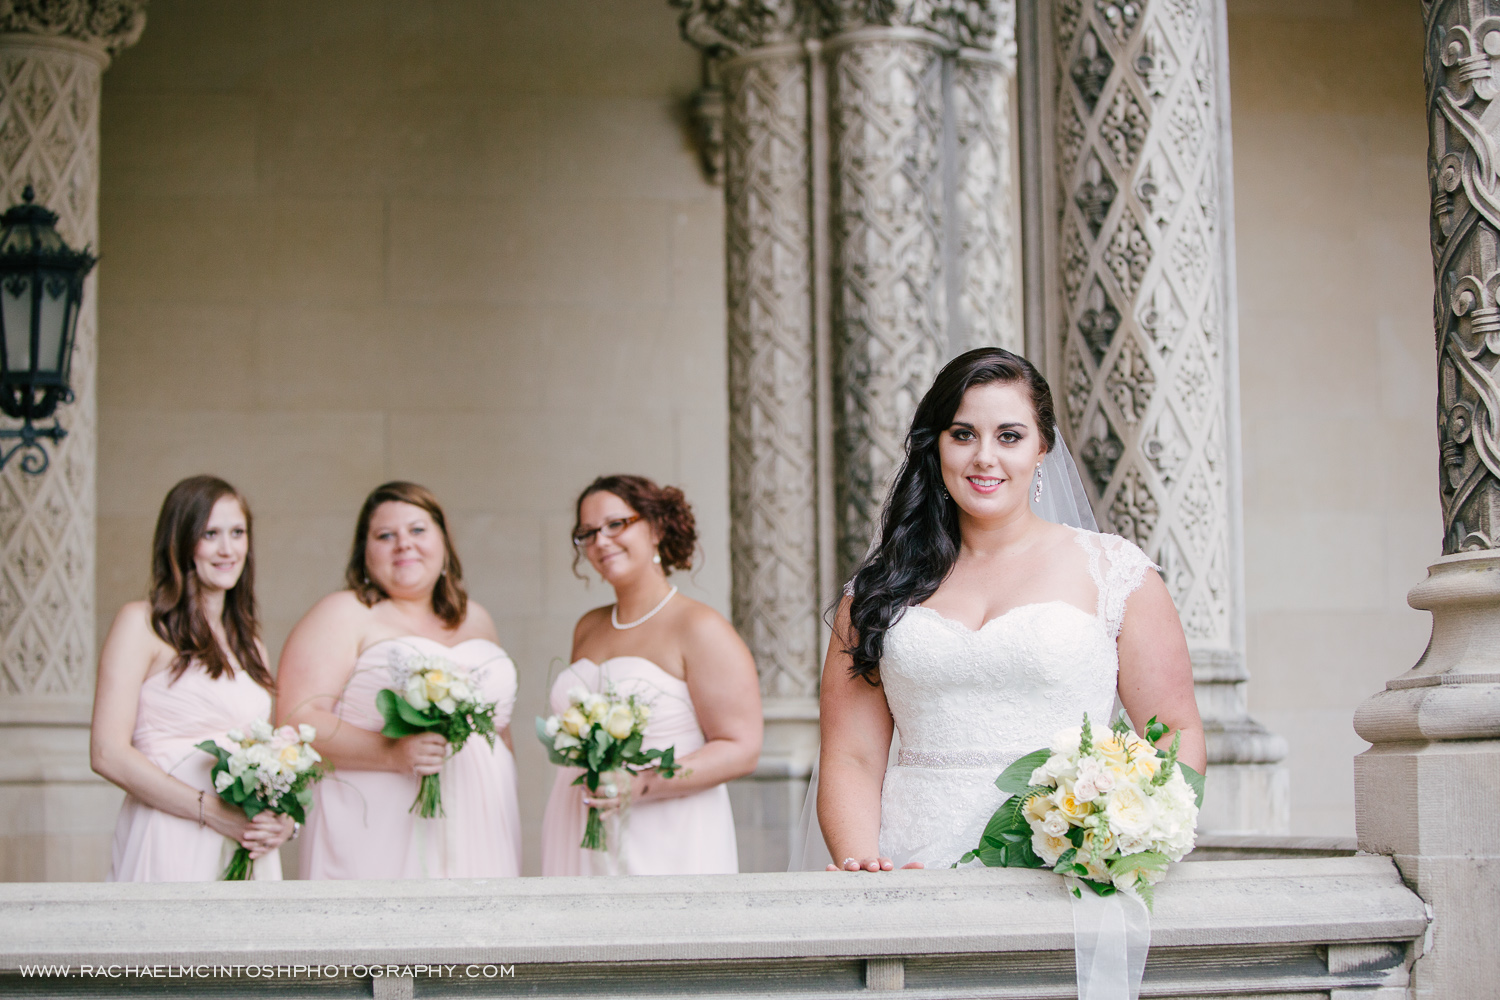 Biltmore Wedding Portraits-Rachael McIntosh Photography-1-7.jpg